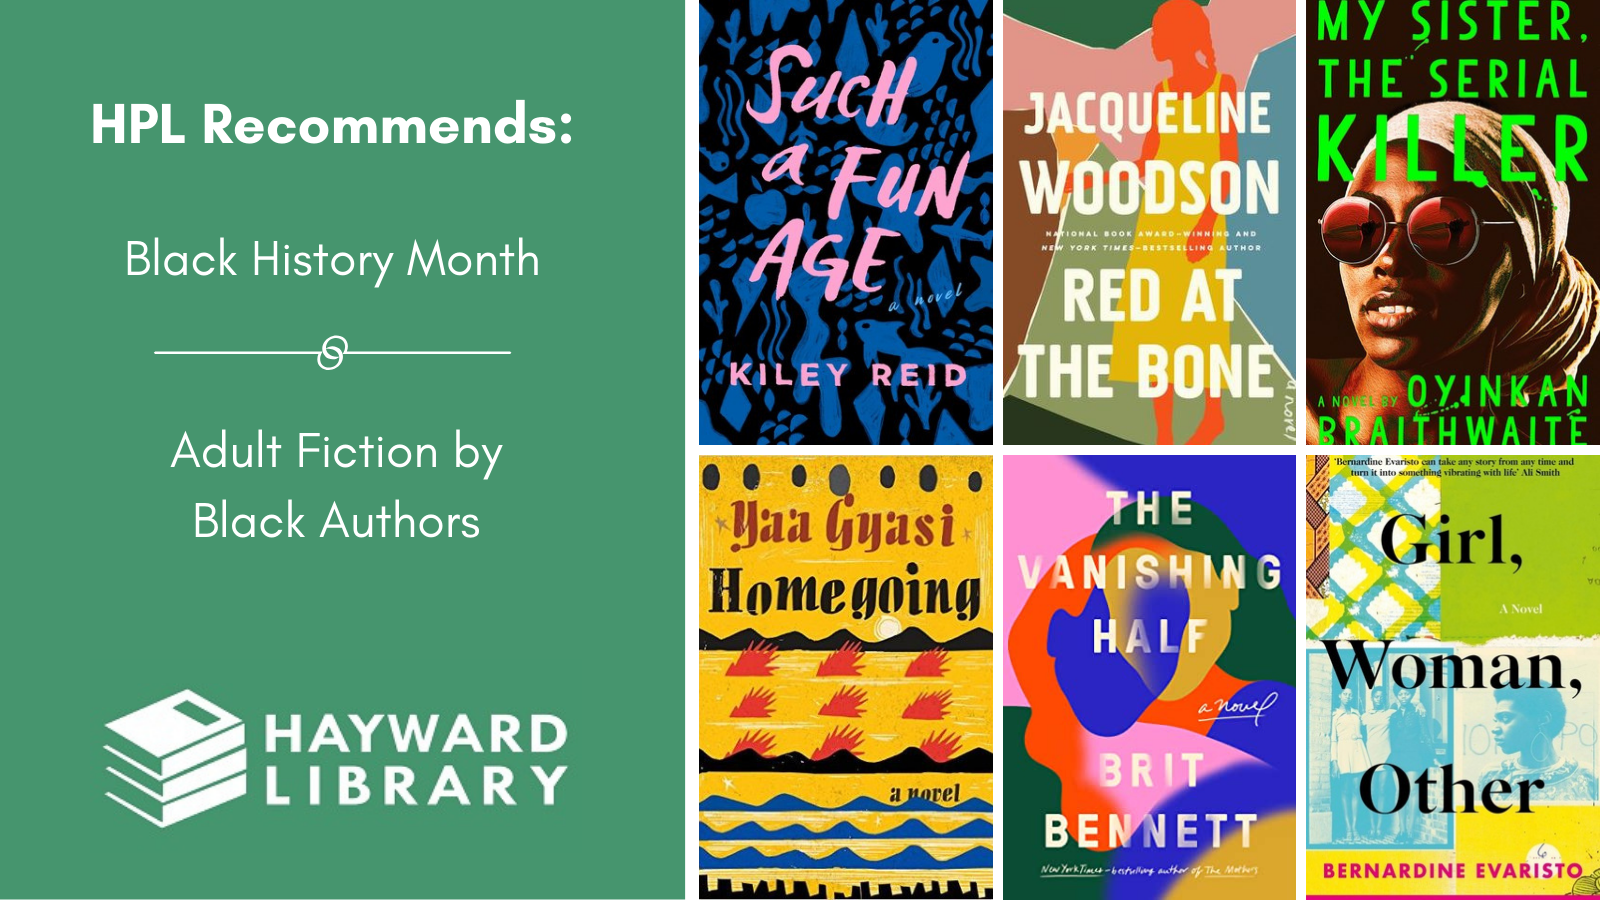 Collage of book covers with a green block on left side that says HPL Recommends, Black History Month, Adult Fiction by Black Authors in white text, with Hayward Library logo below it.